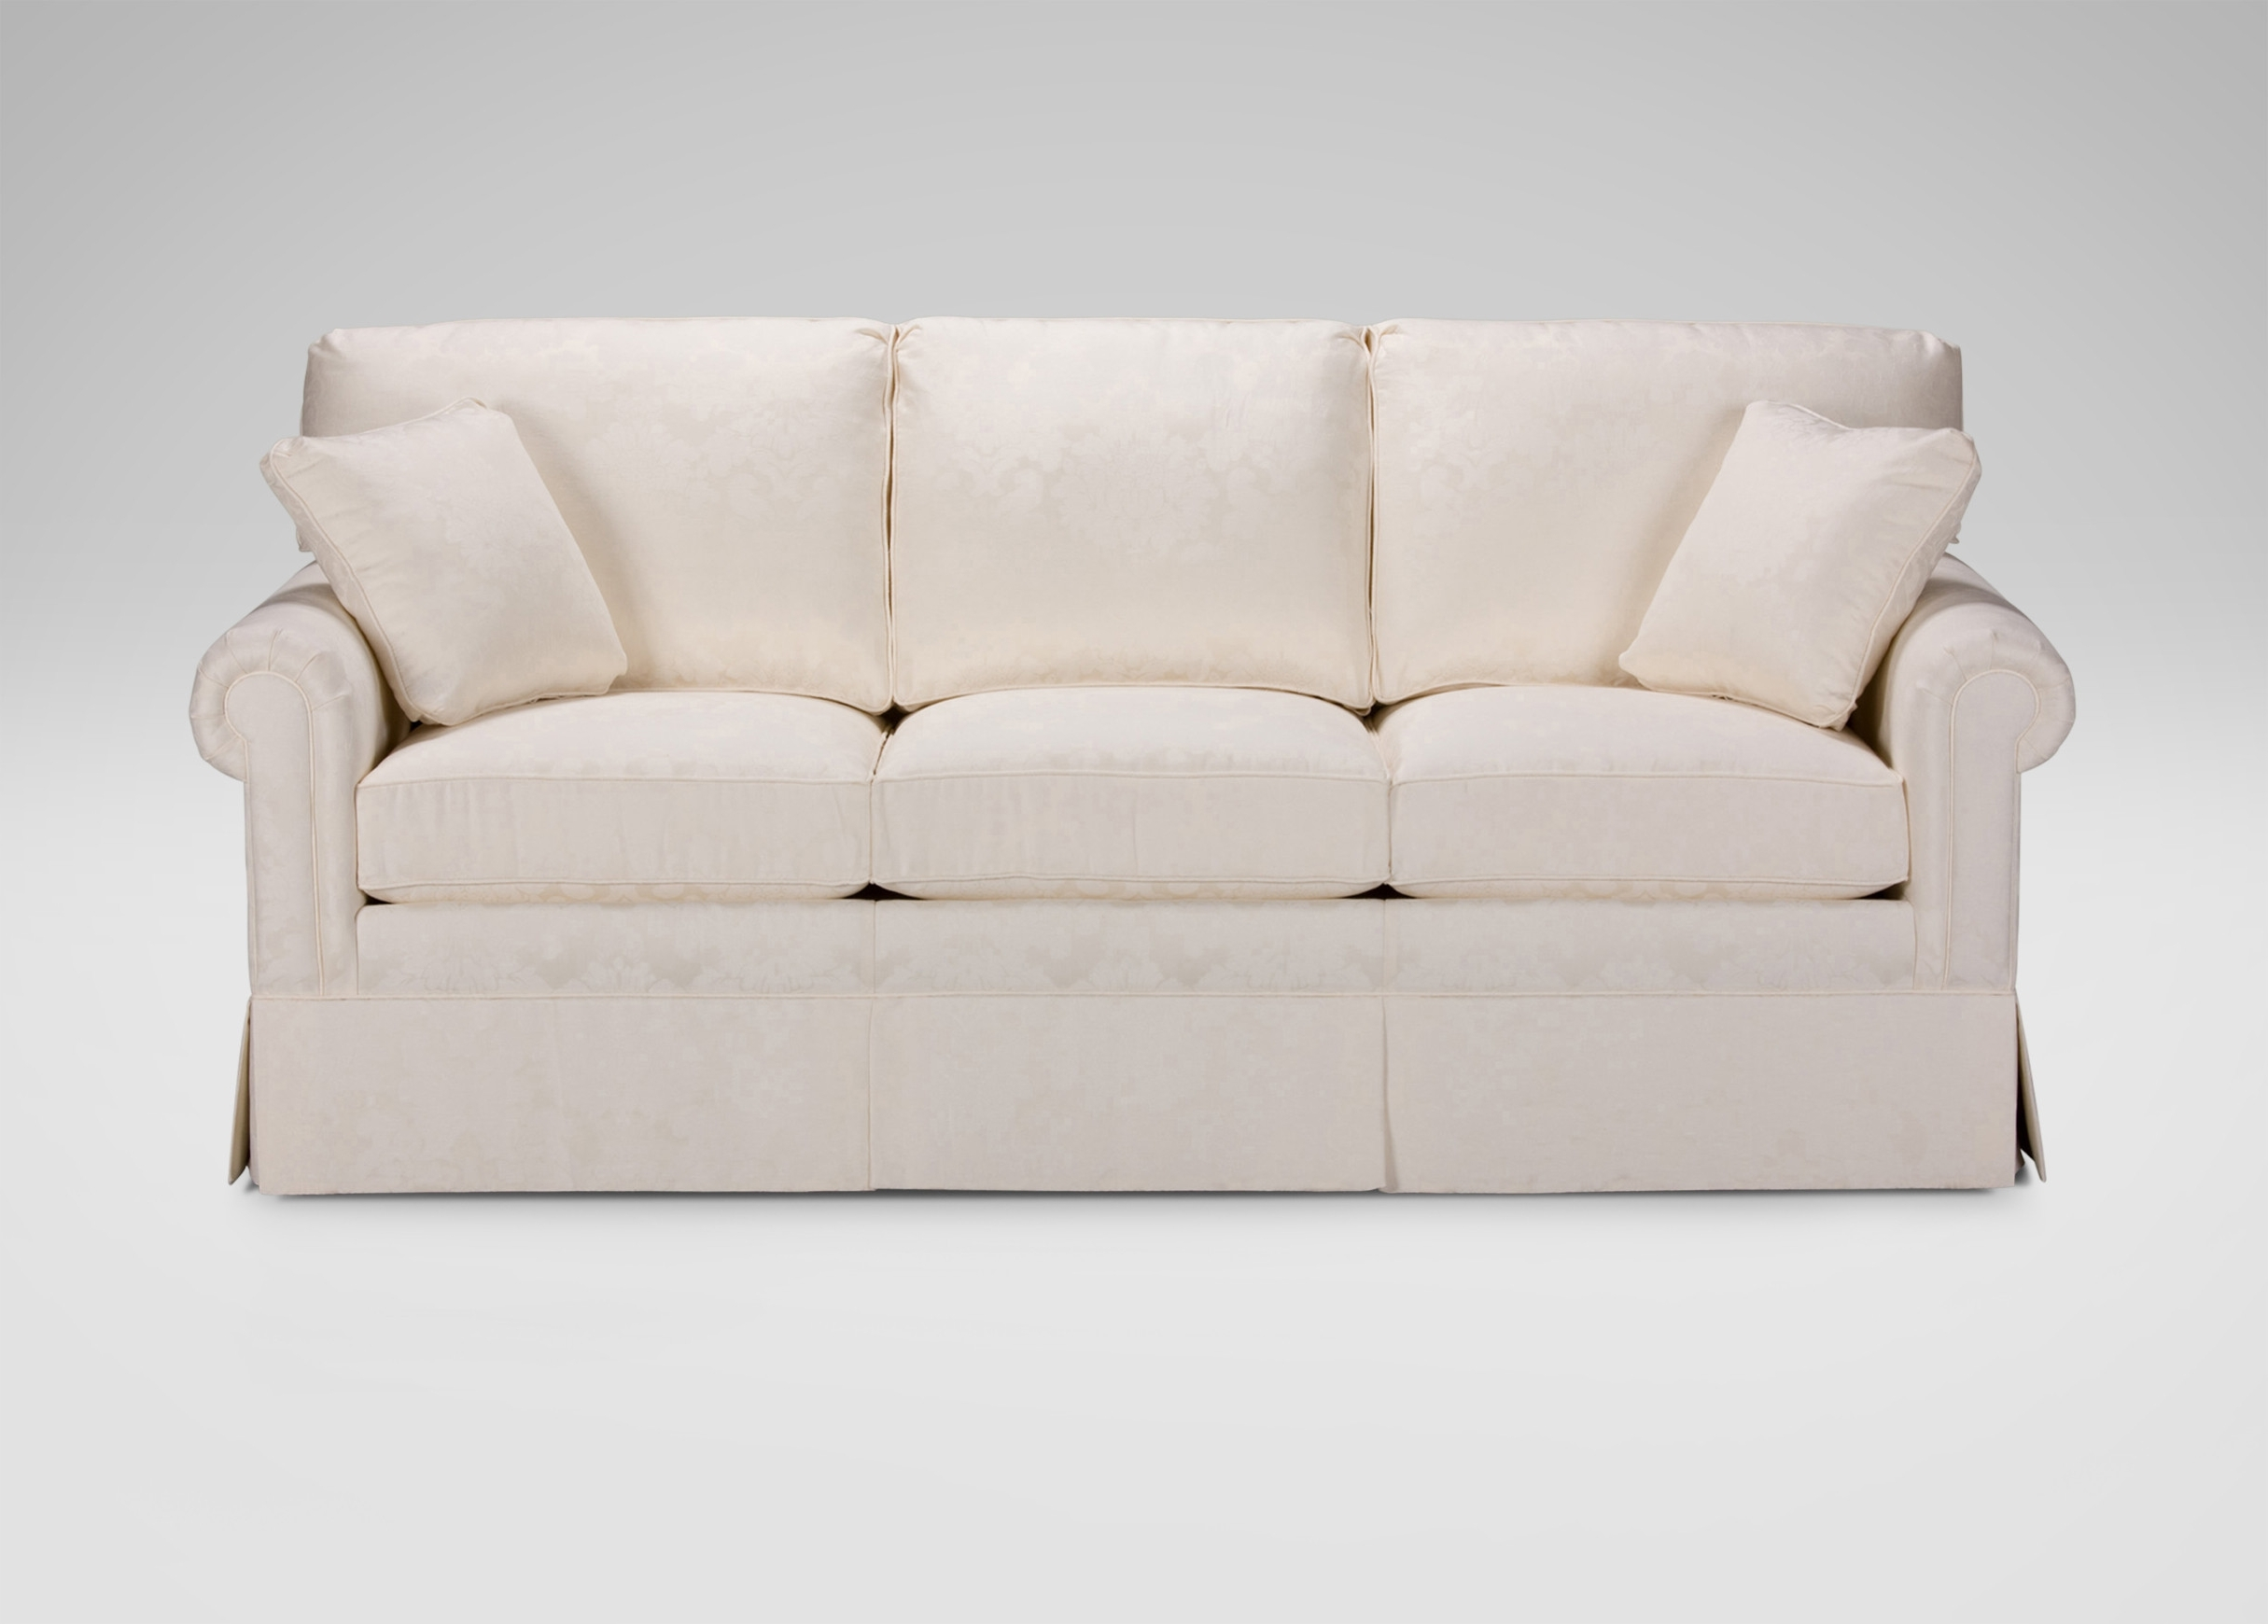 Duluth Mn Sectional Sofas Regarding Popular Furniture : Ethan Allen Down Filled Sofa Beautiful Sectional Sofas (Gallery 10 of 20)